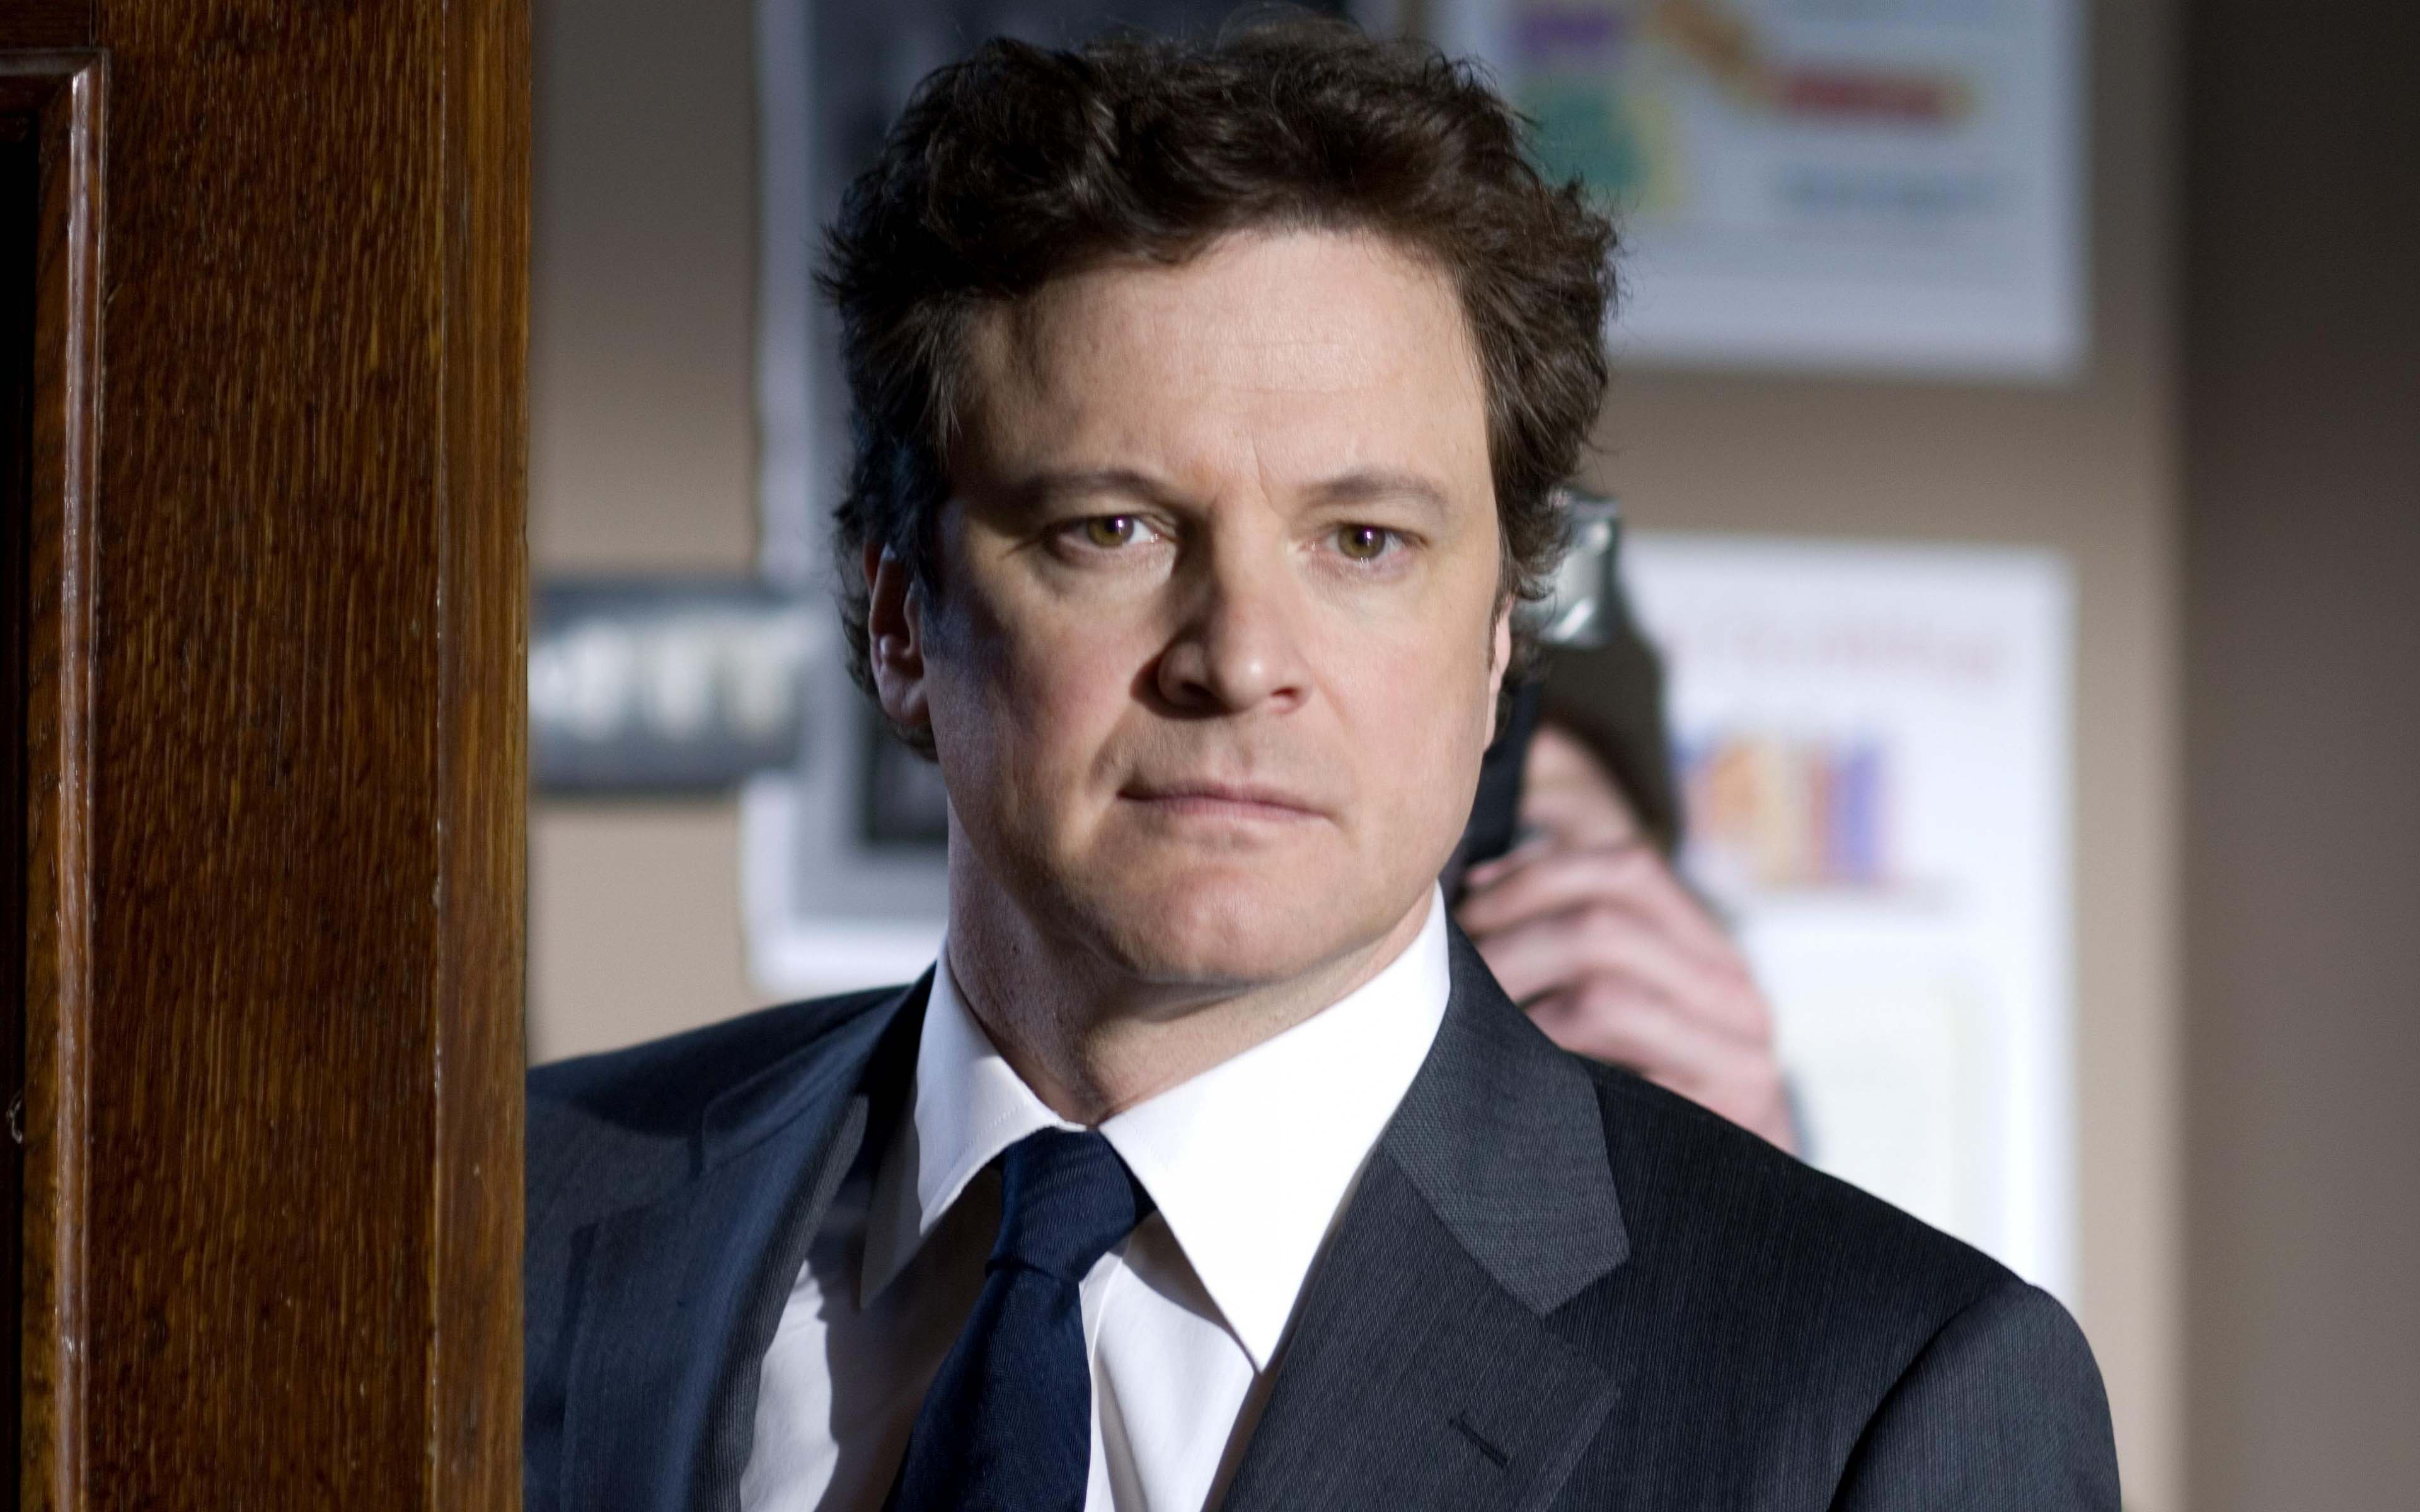 holywood actor colin firth angry wallpapers hd pictures